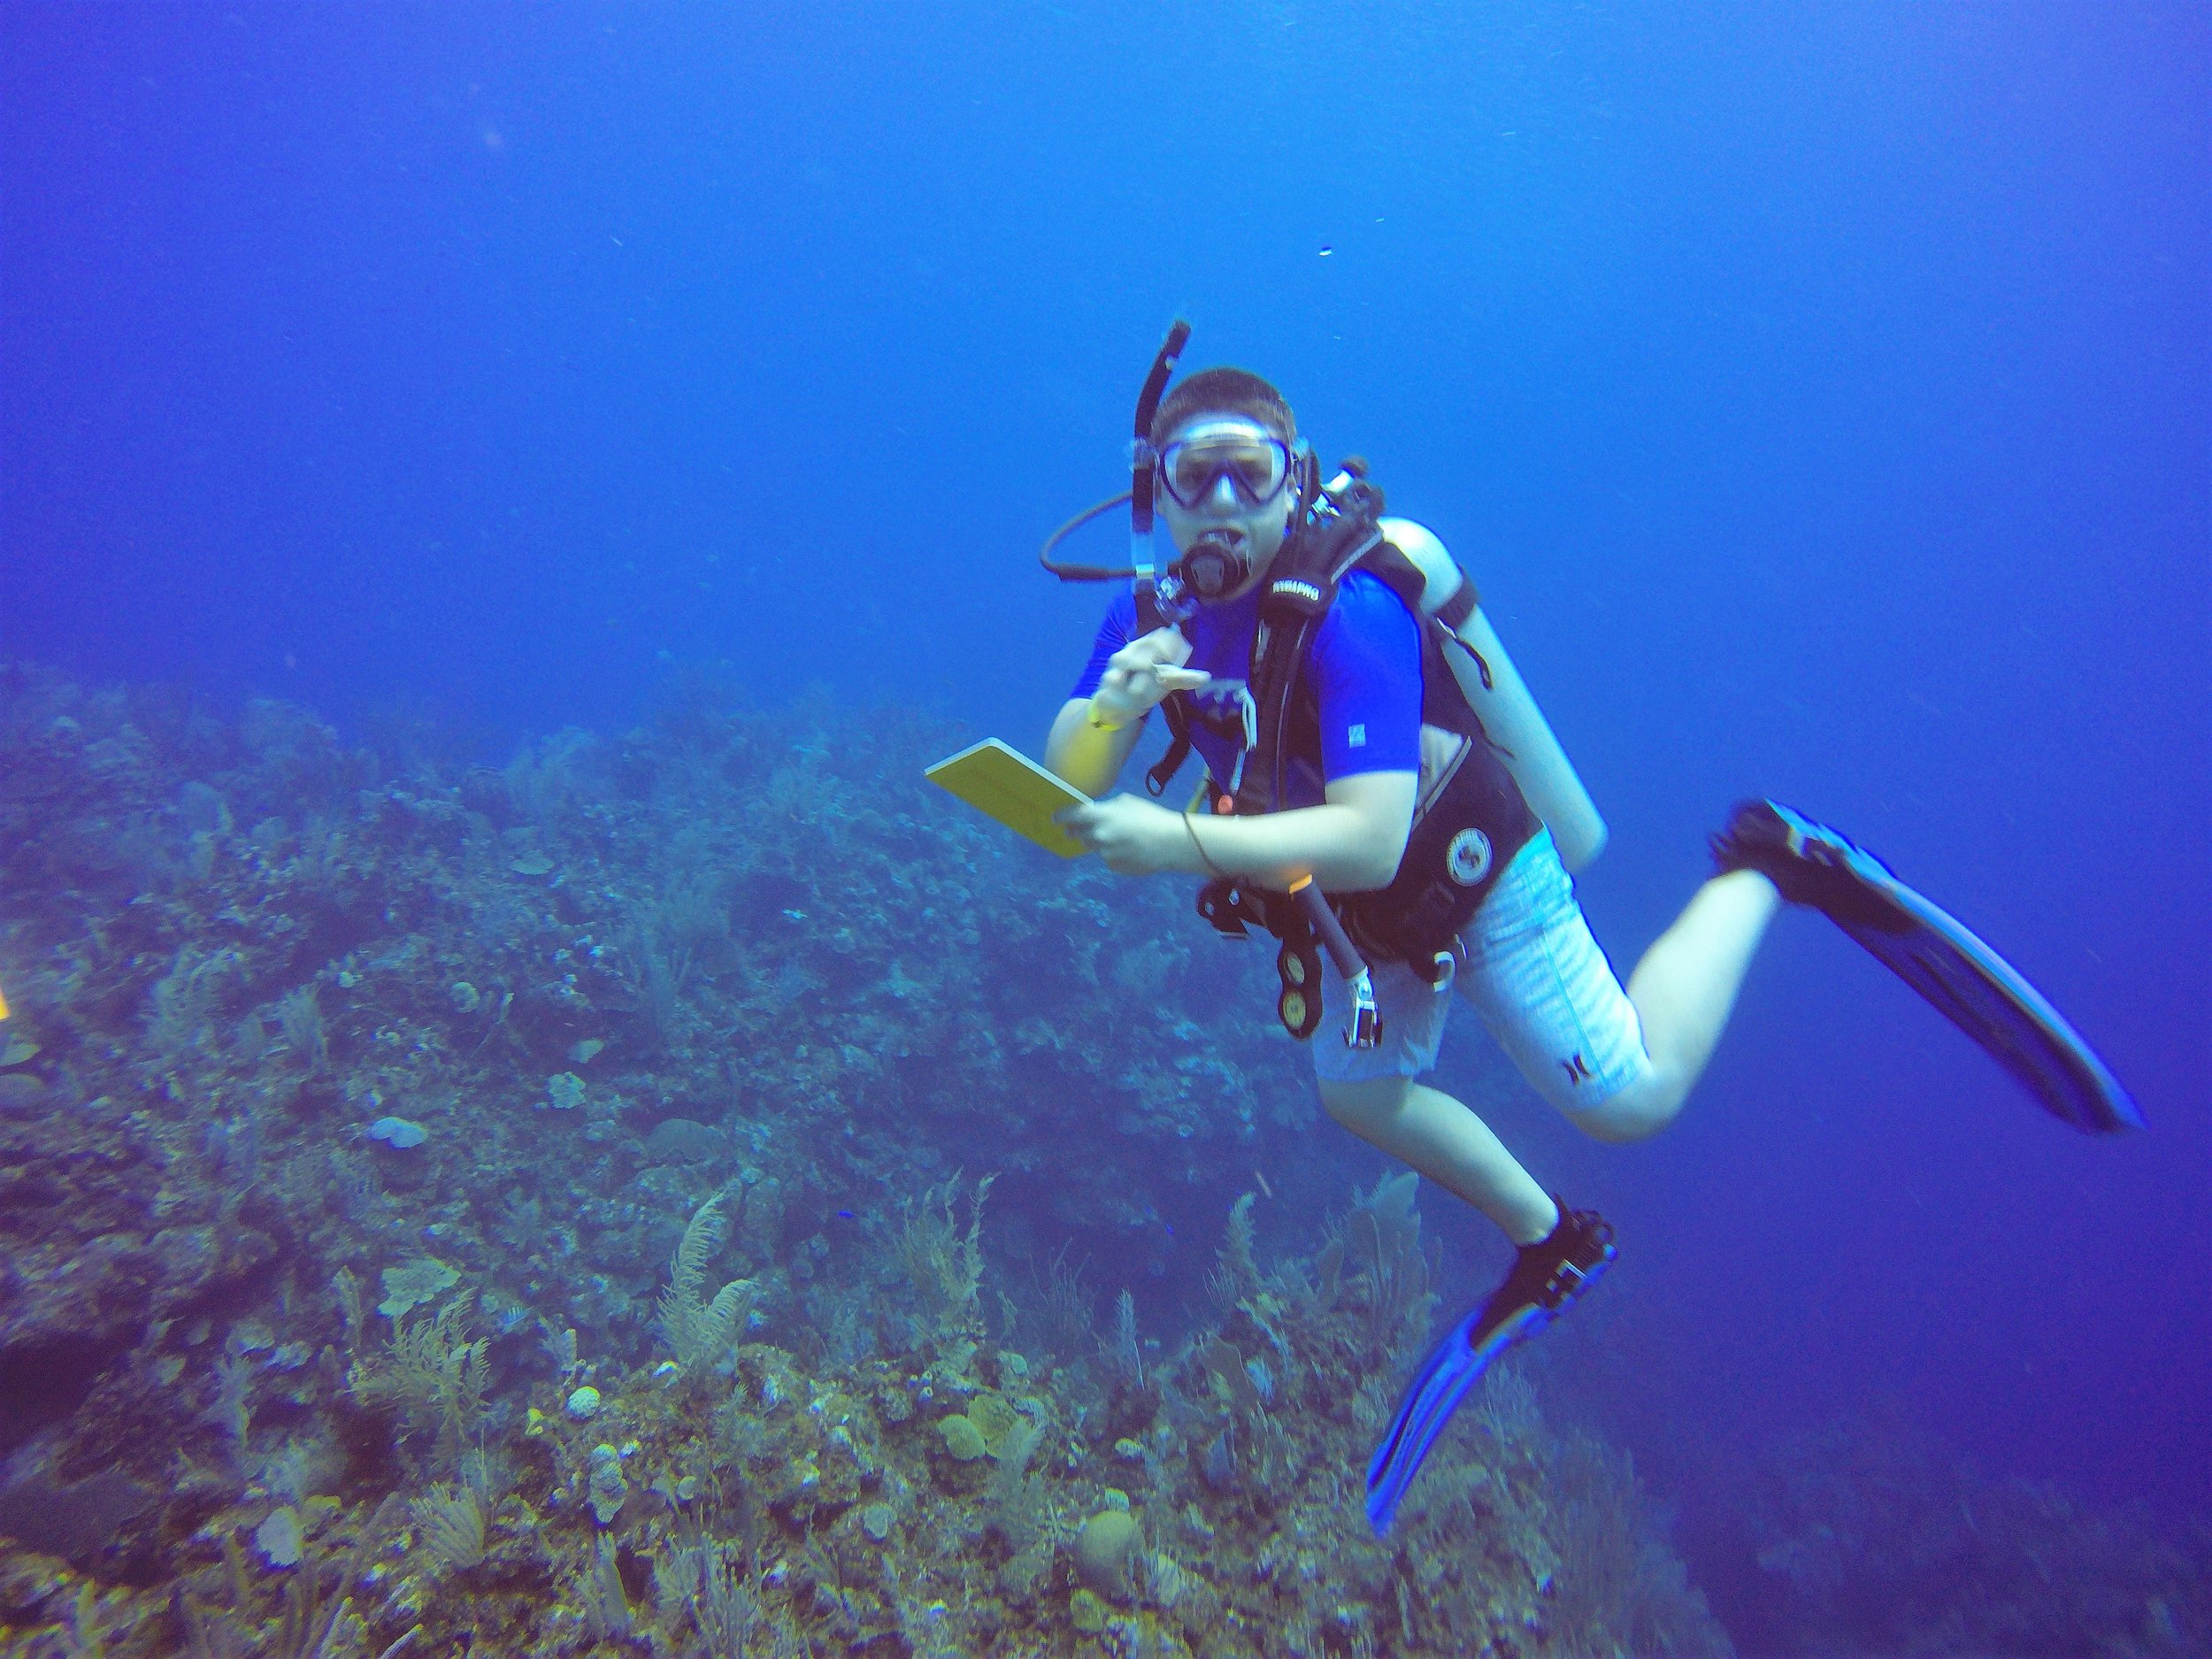 Citizen Science Fish Surveys - Students who register with Reef Environmental Education Foundation (REEF) have an opportunity to earn service hours by conducting fish surveys and uploading the surveys to REEF's citizen science database.